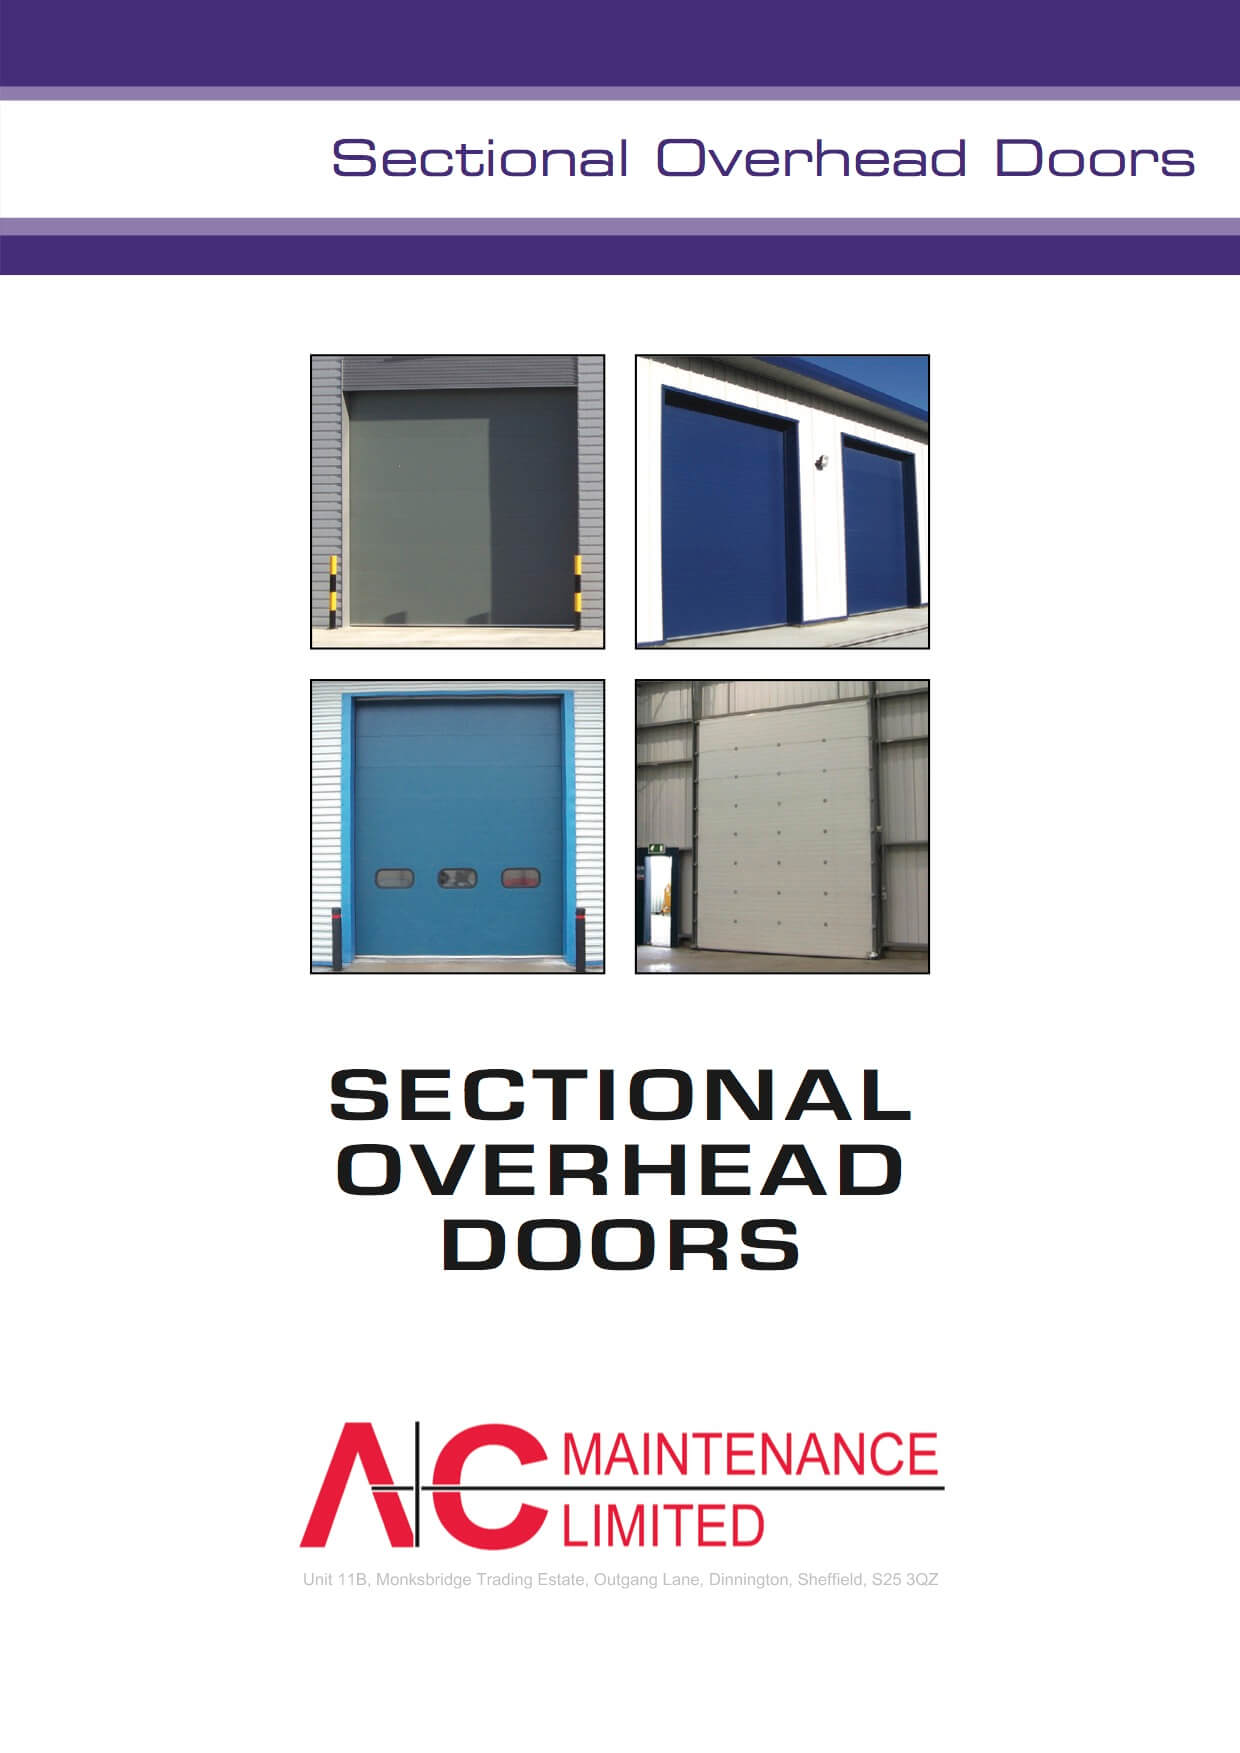 http://www.aandcmaintenance.co.uk/wp-content/uploads/Sectional-Overhead-Doors.jpg